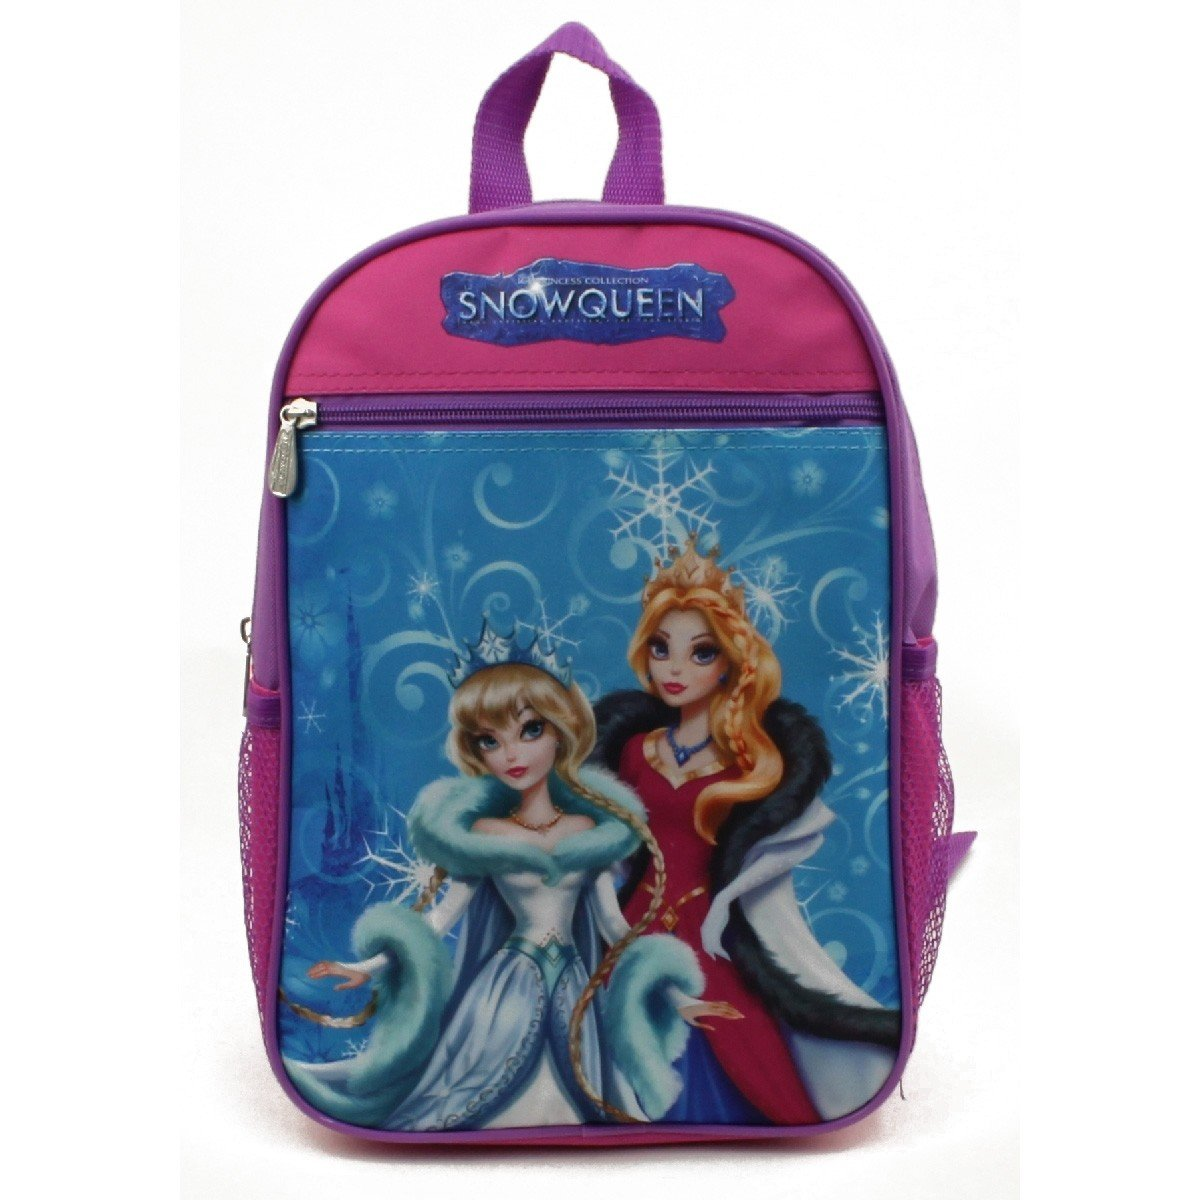 15'' Wholesale Snow Queen Character Print Backpack - Case of 24 by Toon Studio